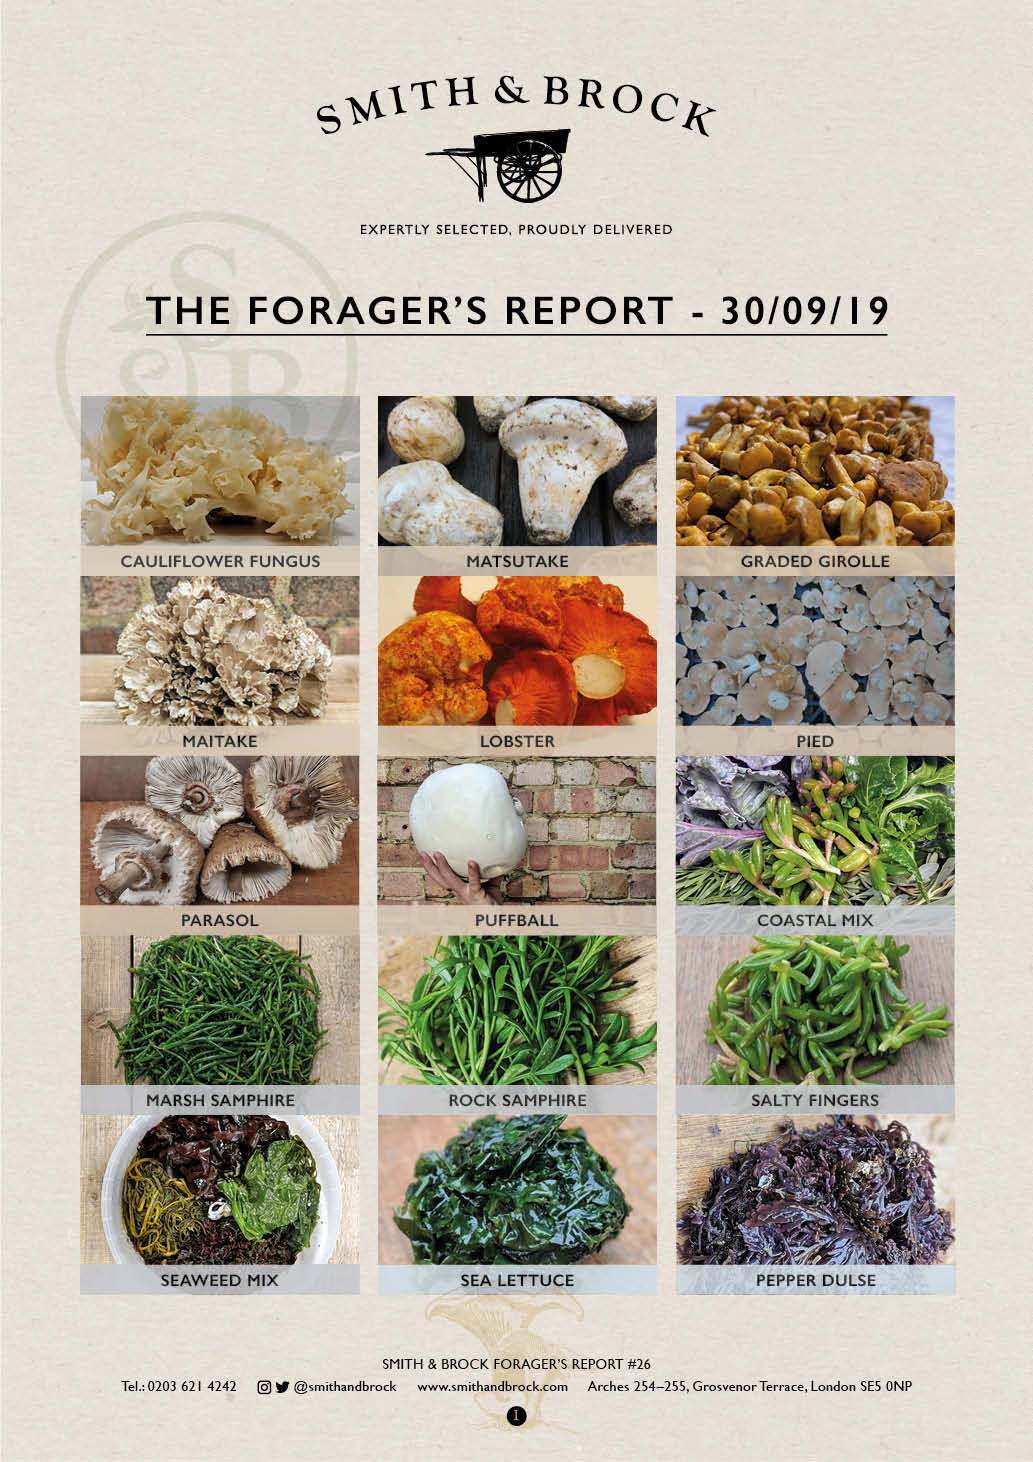 Smith&Brock Foraged Products Report 30 Sep 2019 26